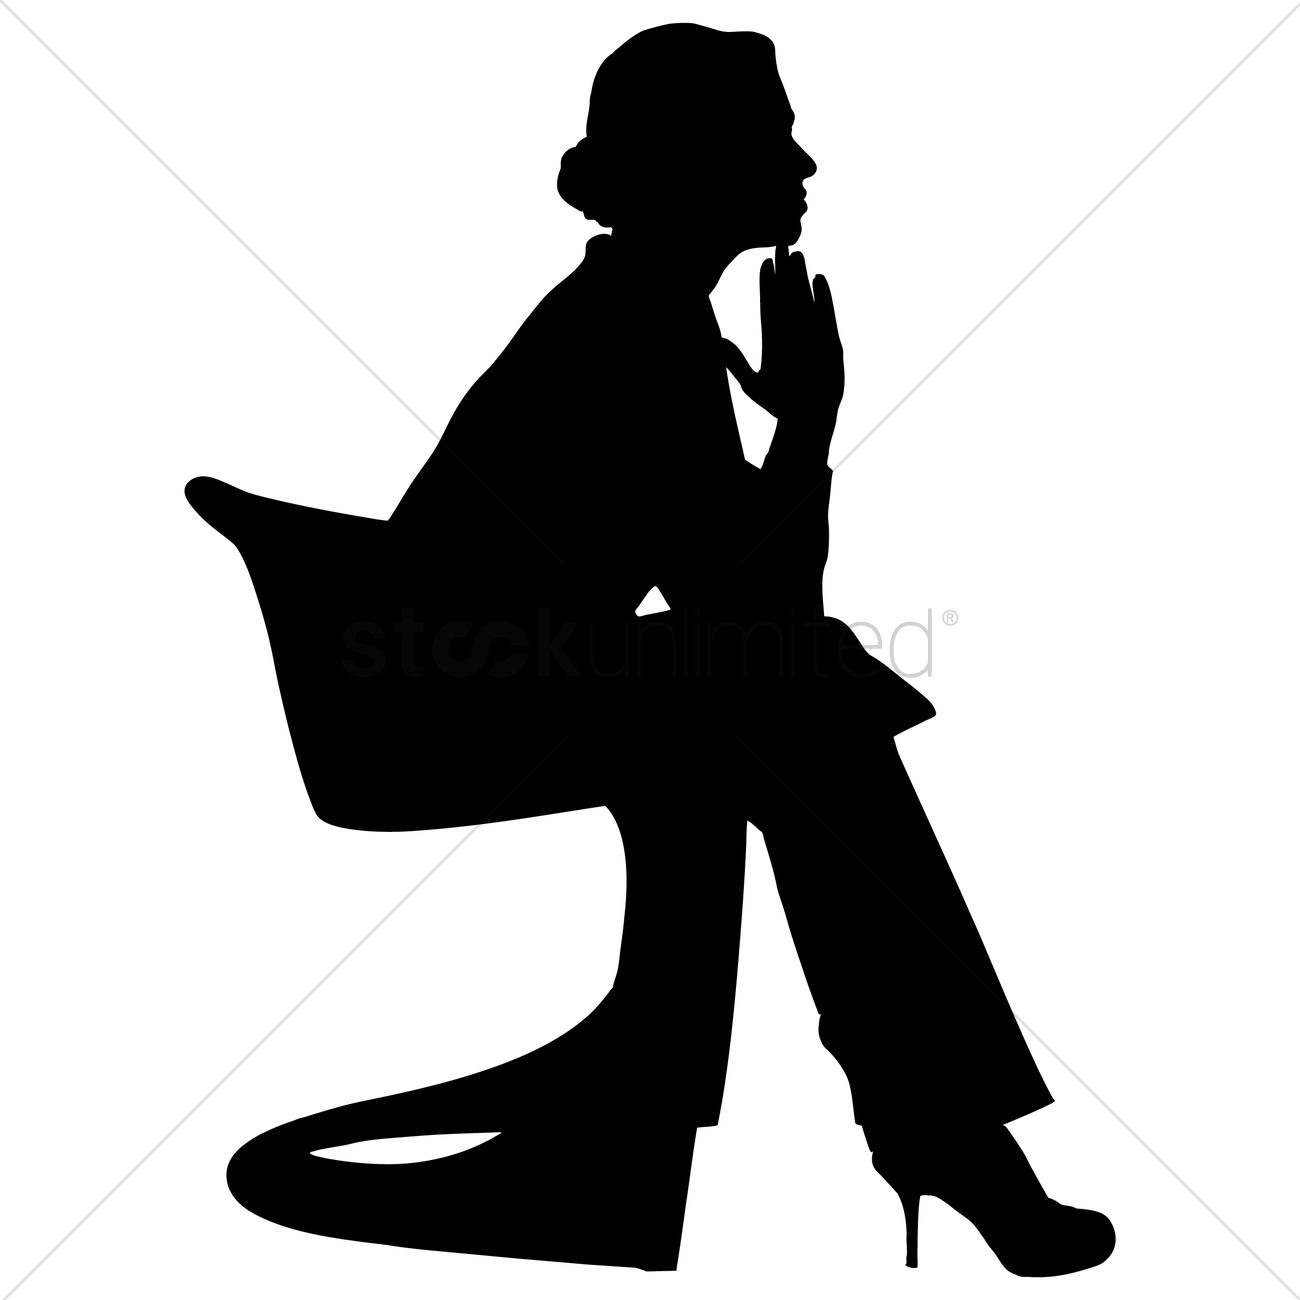 Free Silhouette of a woman Vector Image - 1253635 | StockUnlimited for Person Thinking Silhouette  166kxo